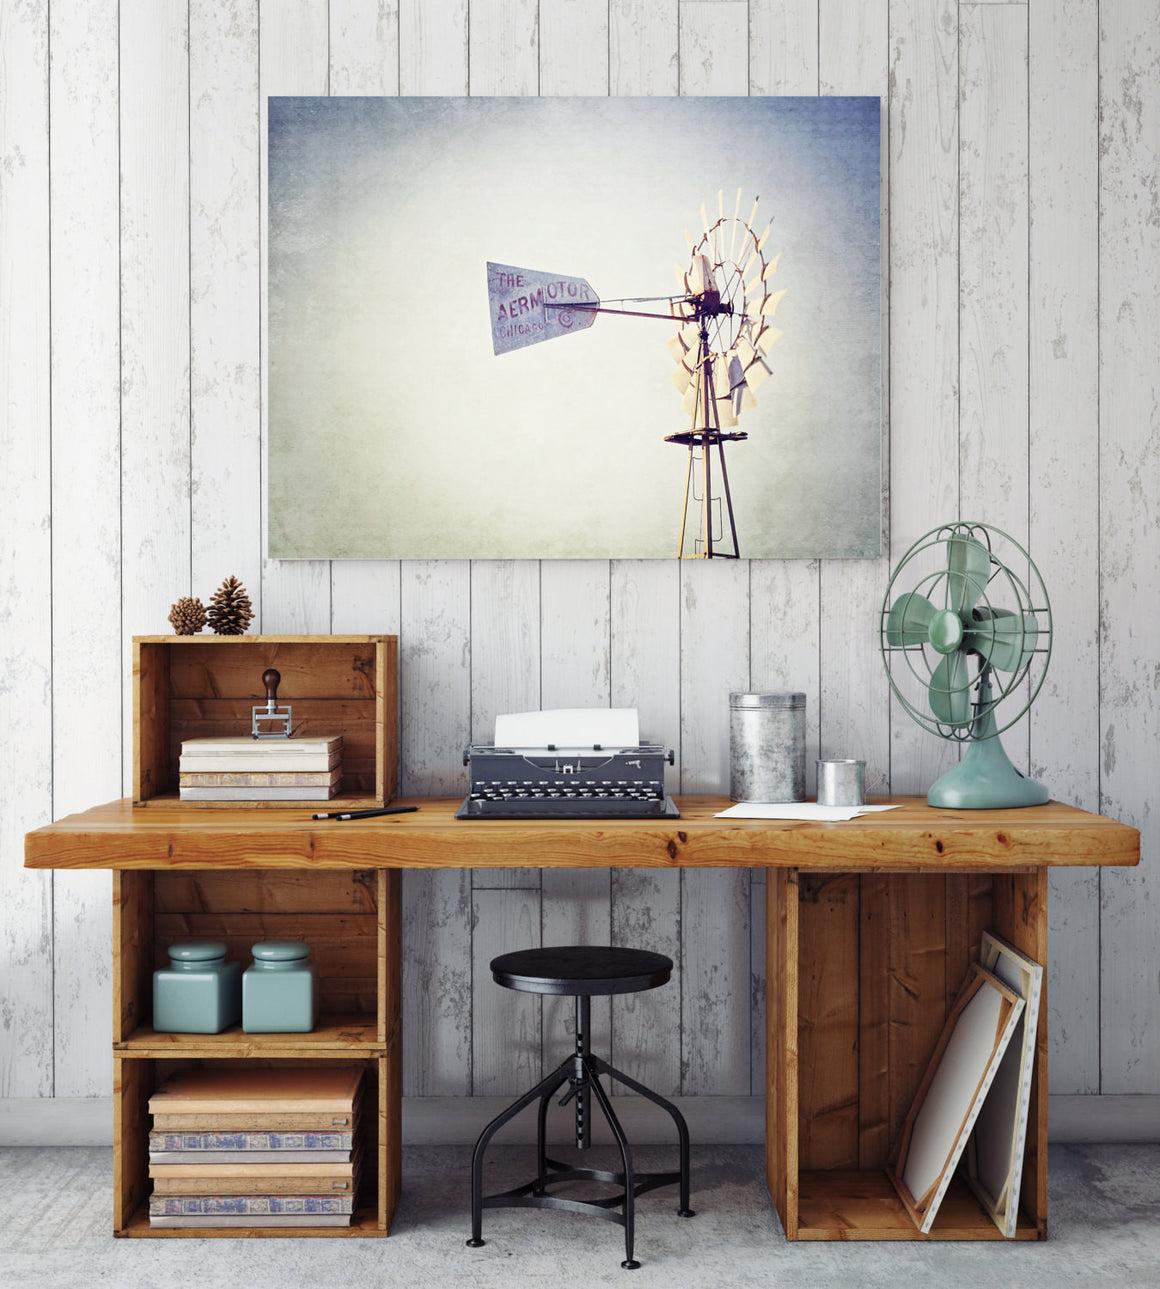 windmill photography, texas photography, canvas gallery wrap, rustic home decor, large wall art, windmill art, texas decor, aermotor, rustic